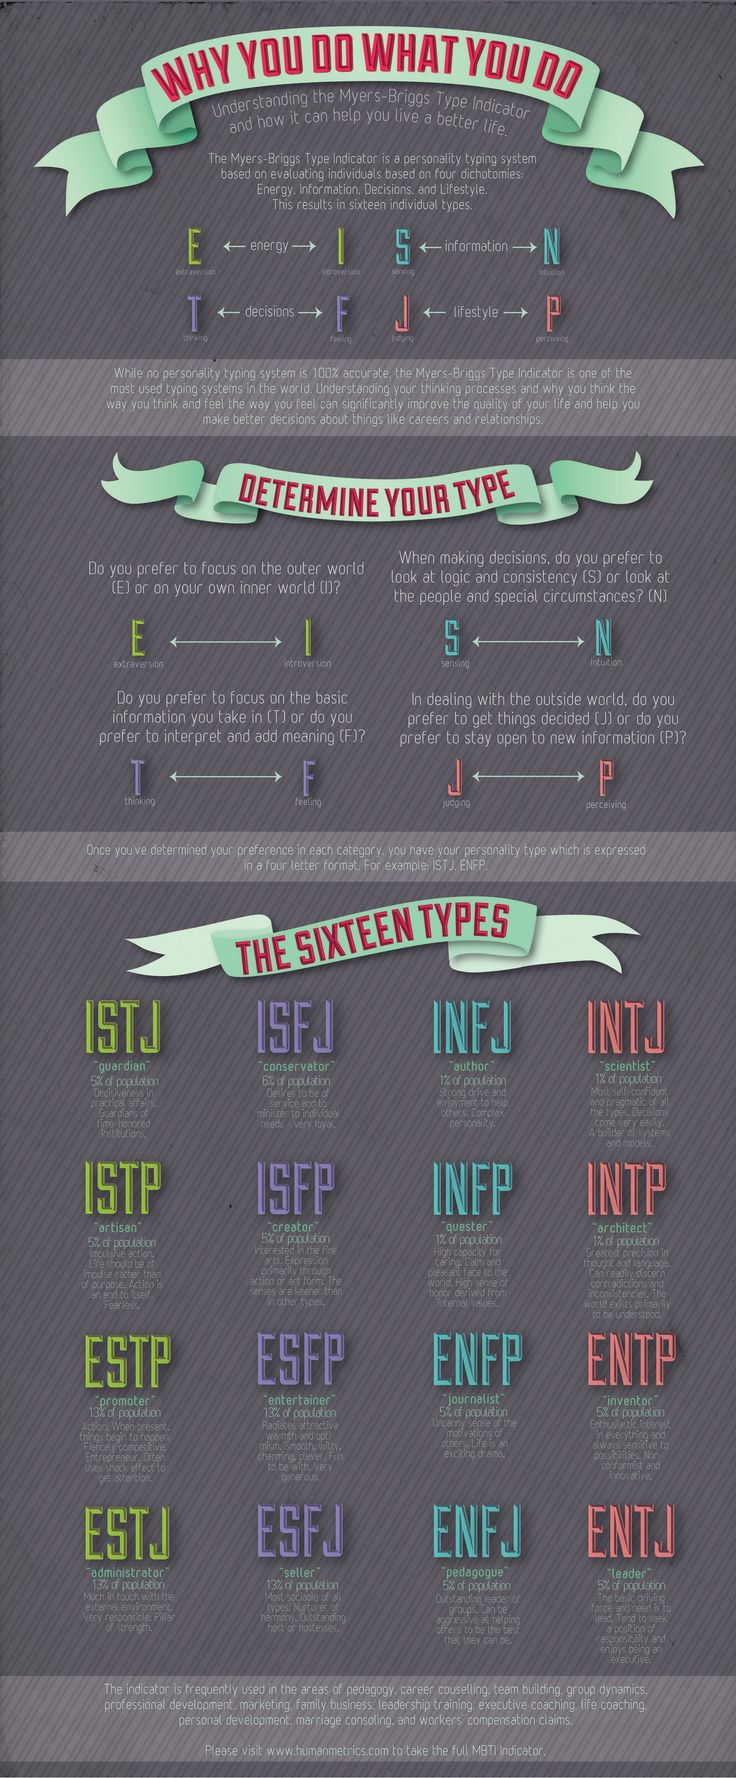 This is good information, but the real Myers-Briggs type indicator results require a test administered by a professional. A lot of workplaces use the testing and it has a lot of empirical evidence supporting the results if given correctly. So though the online tests are fun and infographics like these are wonderful for education and learning more, don't equate the results you get as the same you'd get in an official testing situation.